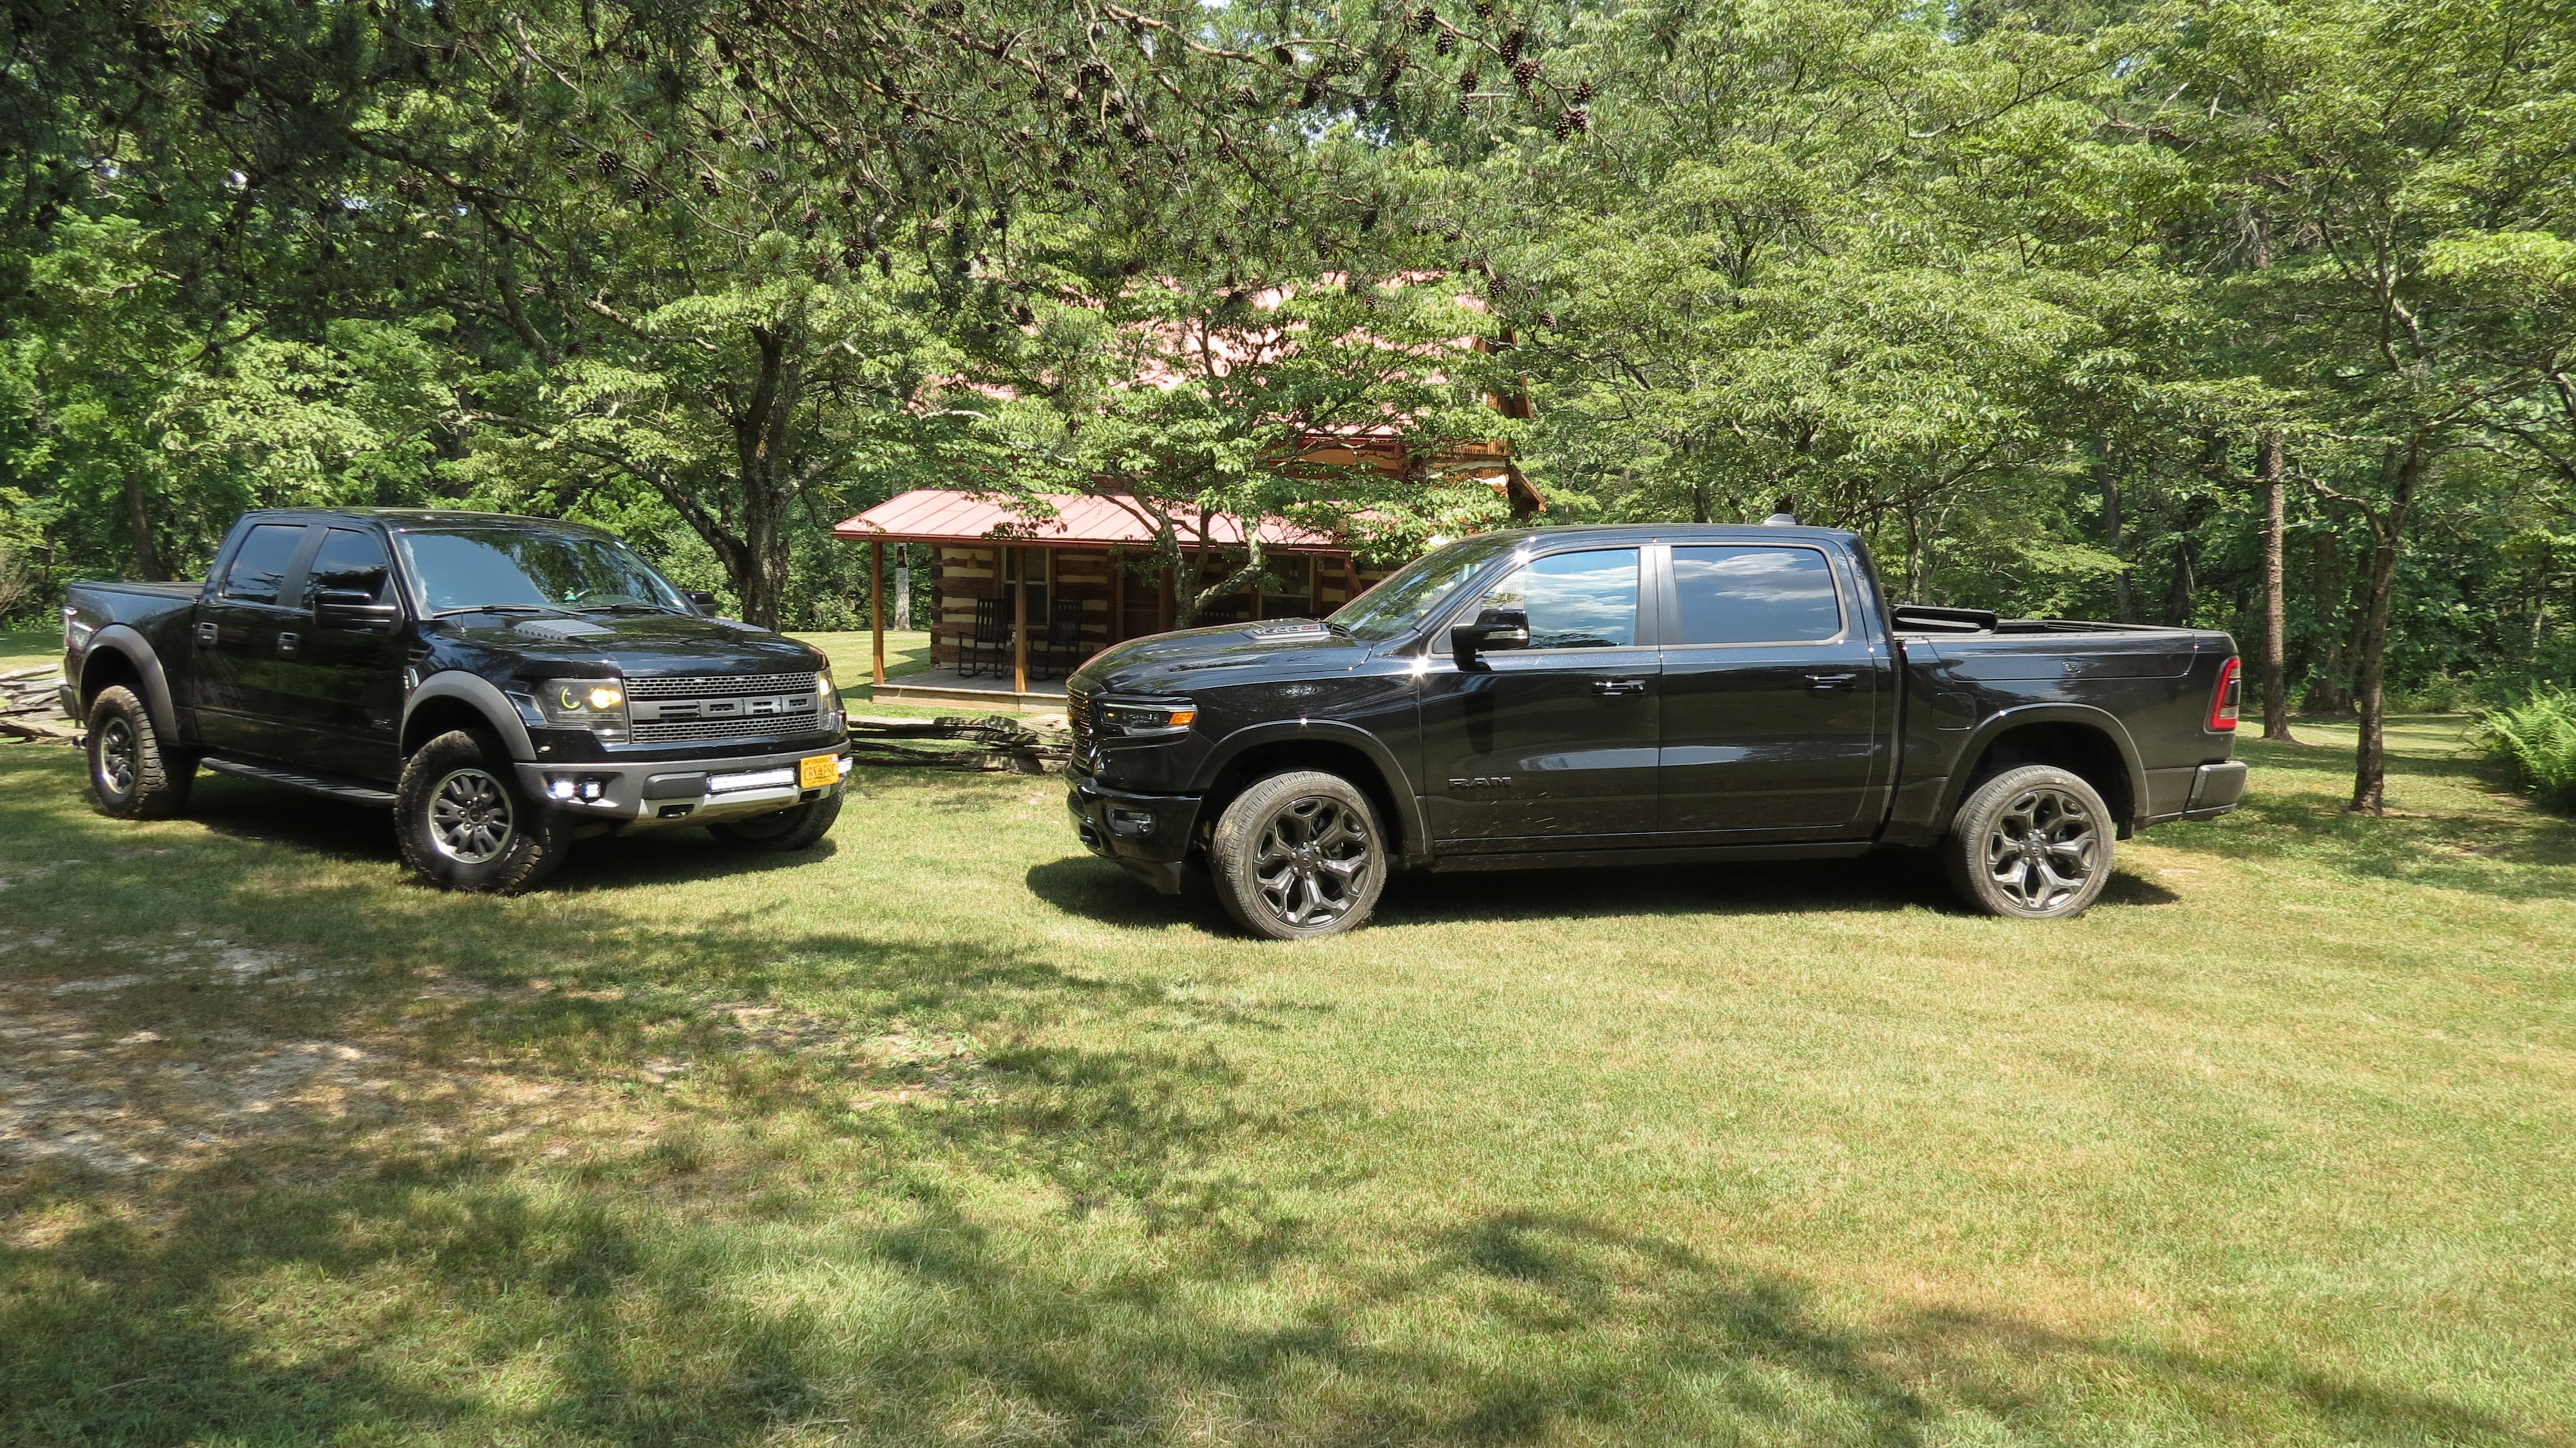 Ram 1500 and early Ford Raptor